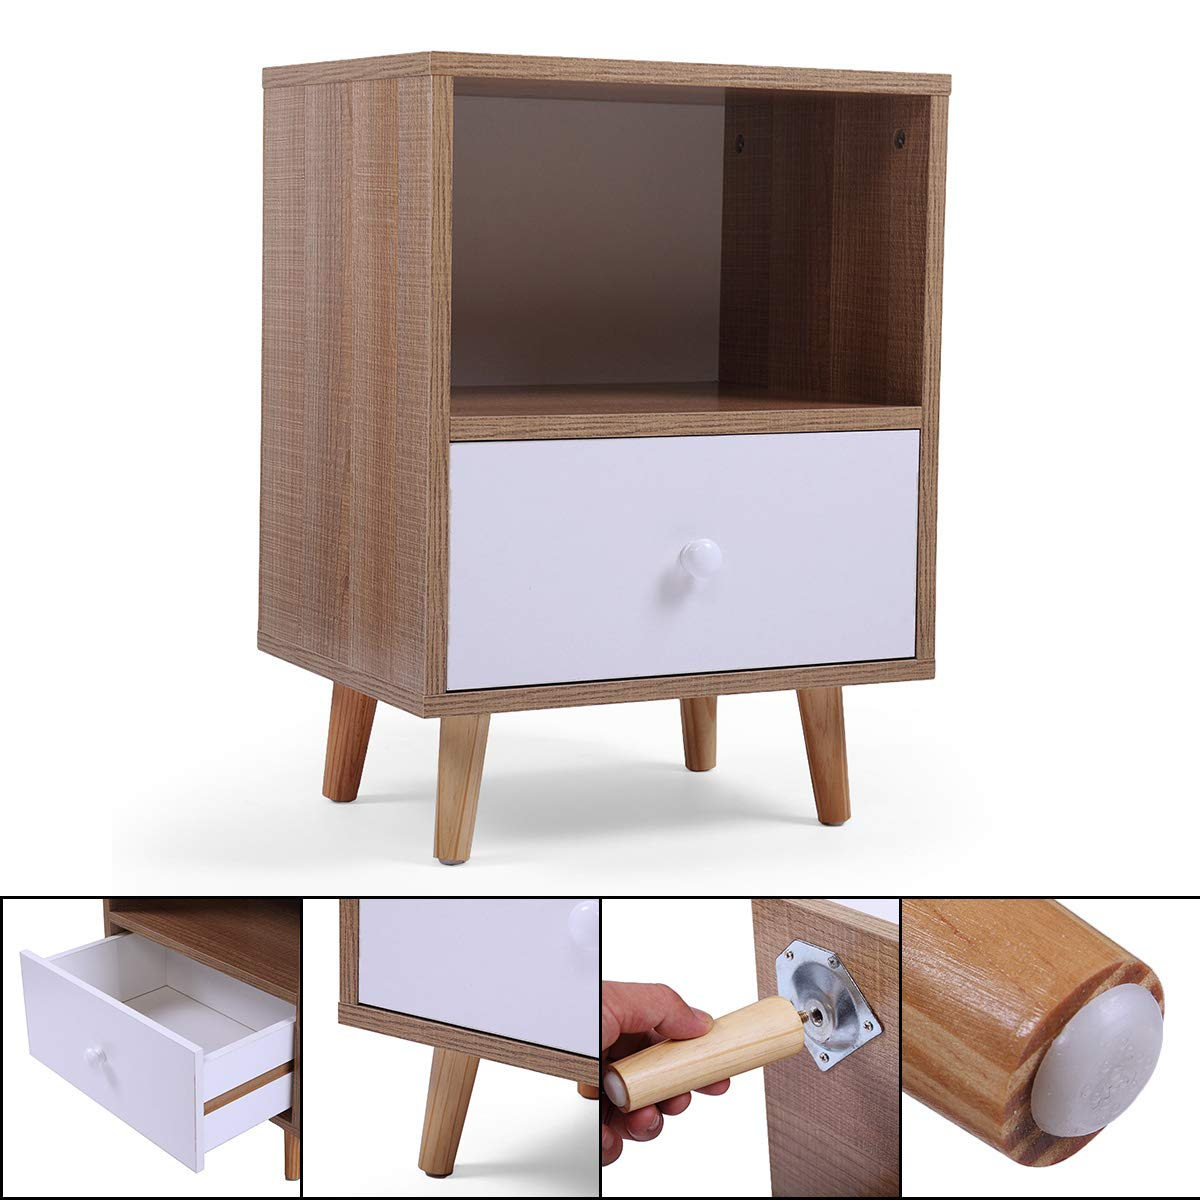 Set of 2 Night Stand 2 Layer w/Drawer Bedside End Table Organizer Bedroom by Betterhomechoice (Image #8)